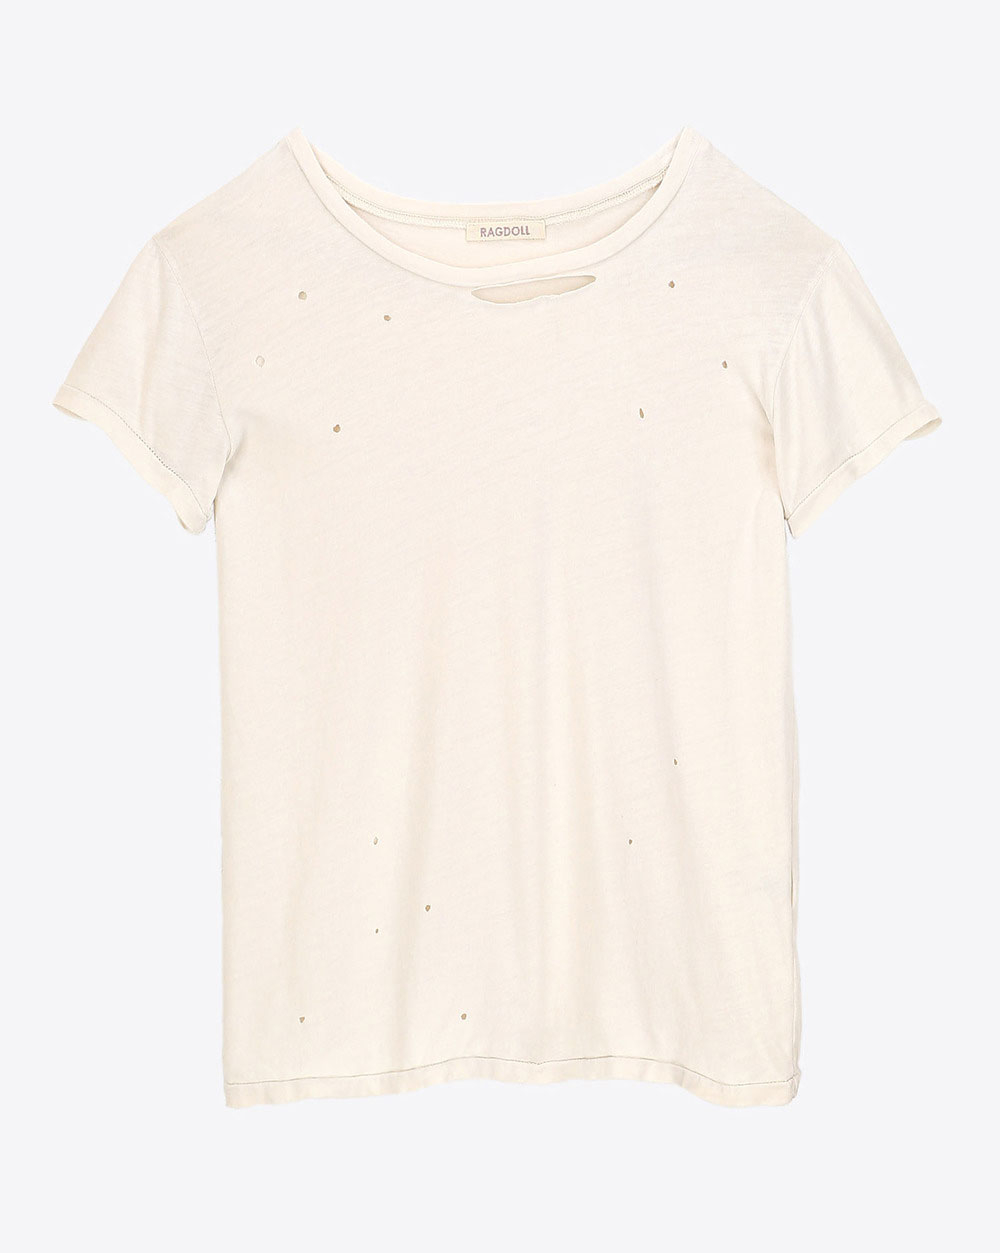 Ragdoll LA Distressed Vintage Tee - Bone White